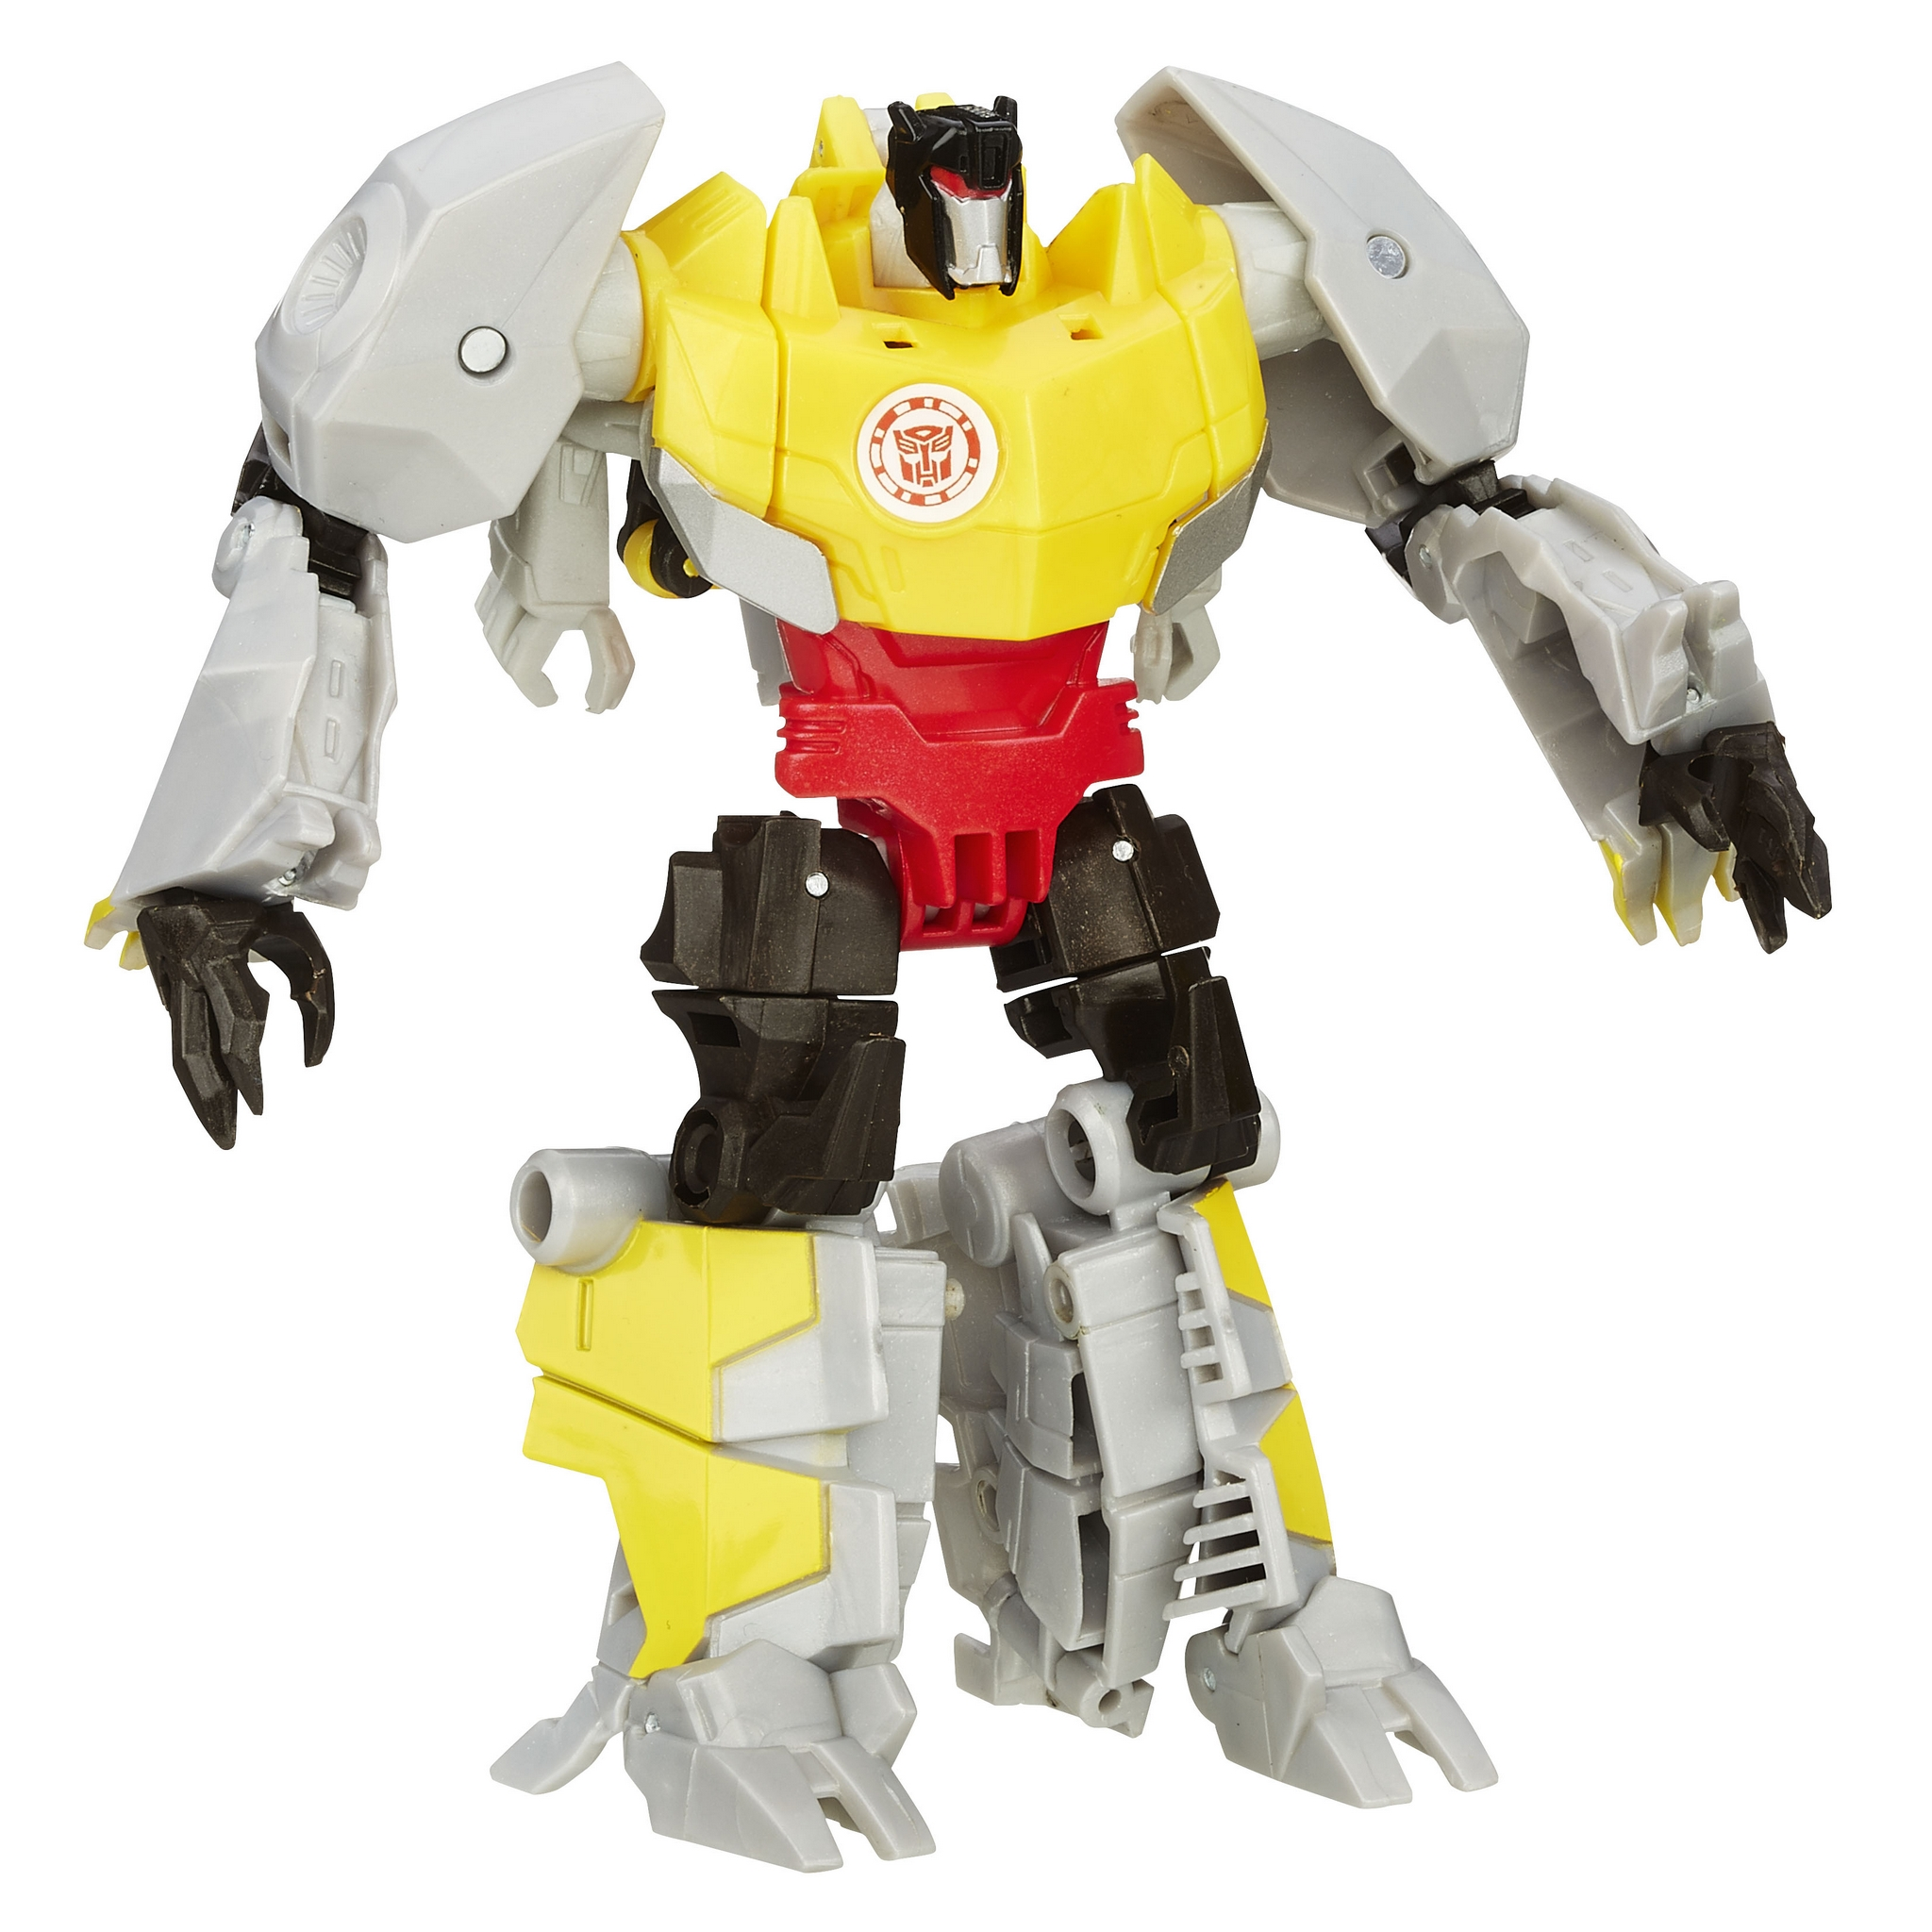 official images of transformers robots in disguise